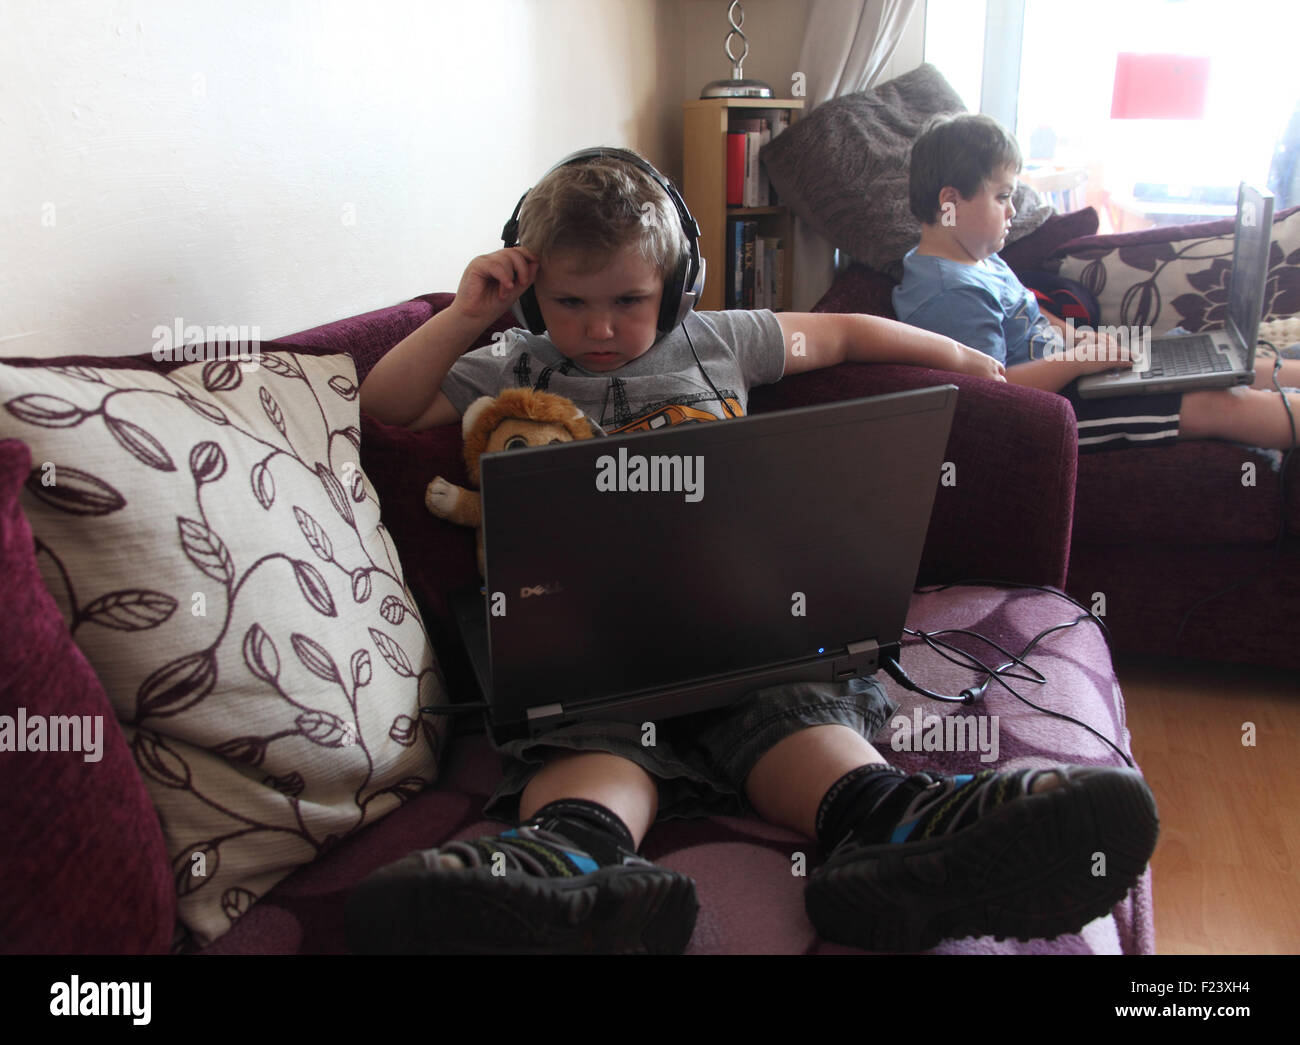 Young boys using laptop computers - Stock Image